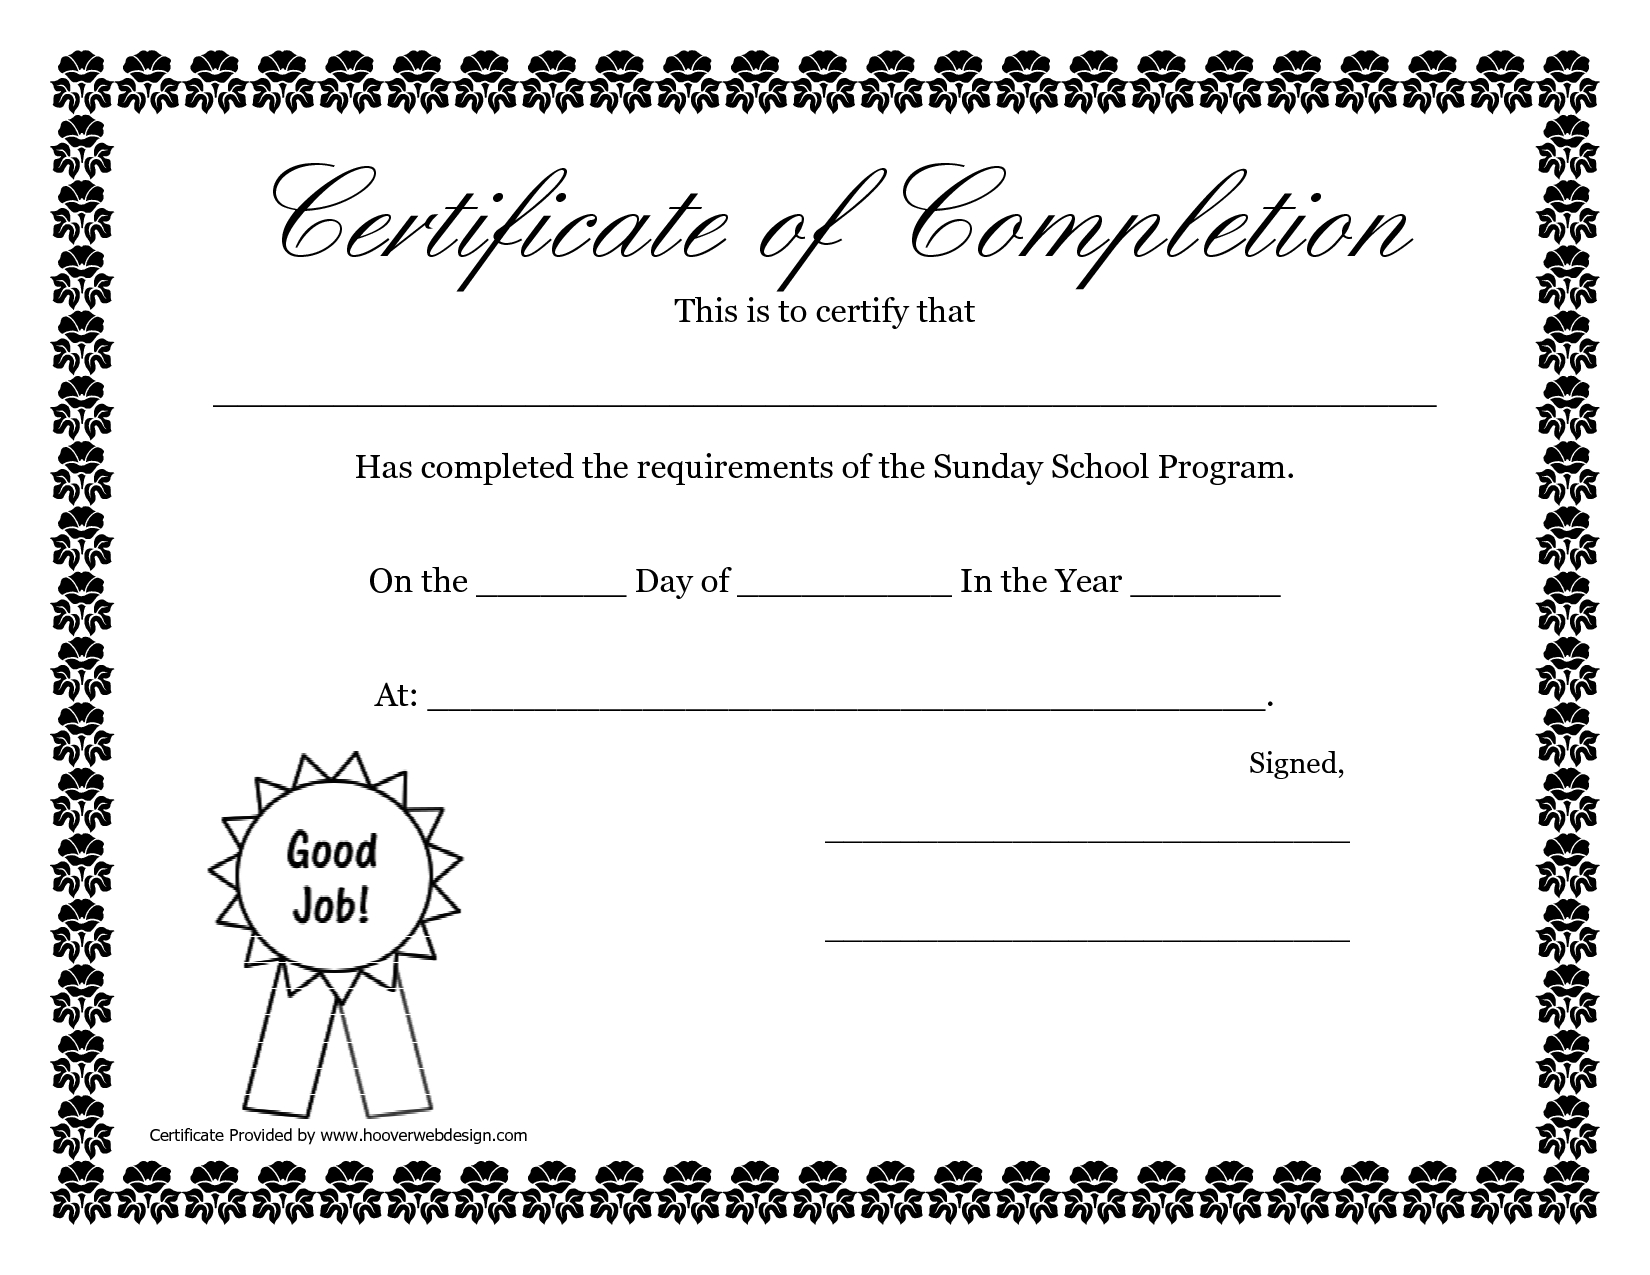 Pdf-Free-Certificate-Templates - Free Printable School Certificates Templates